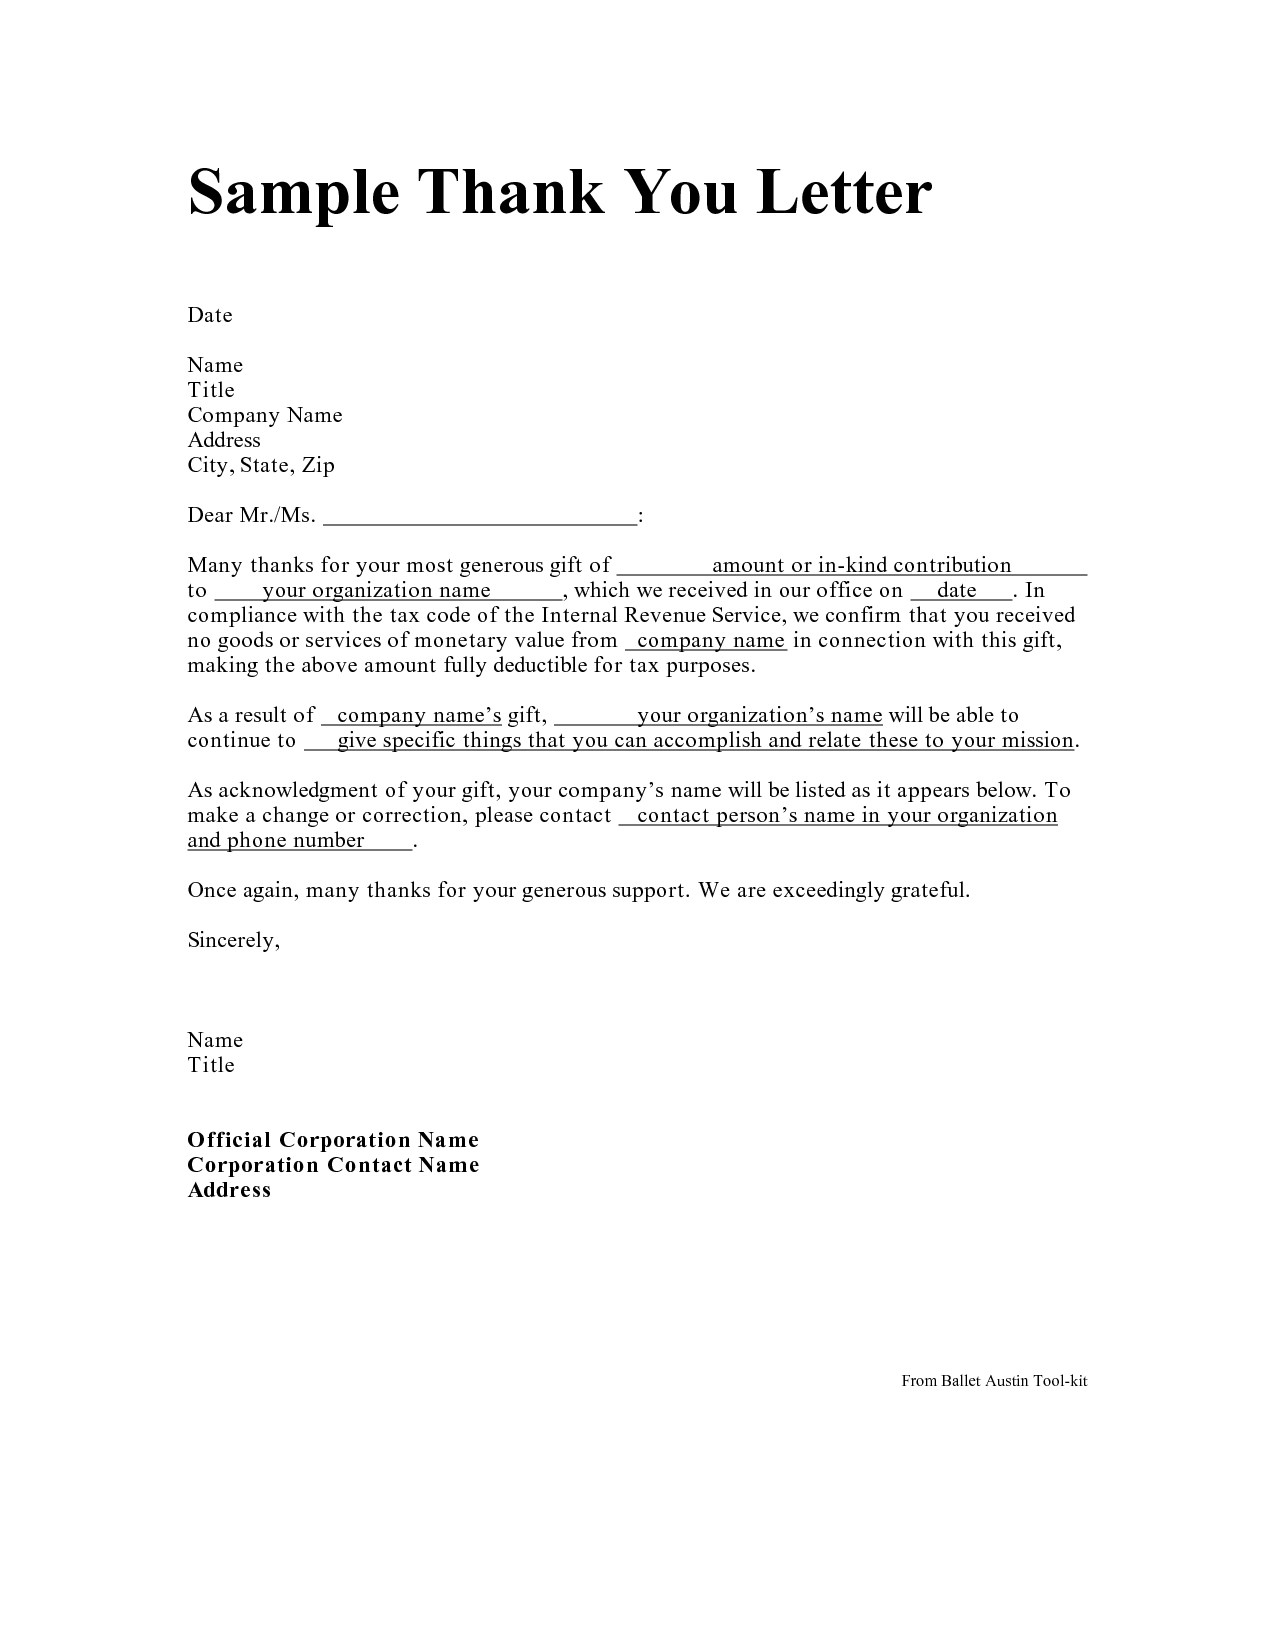 scholarship thank you letter template example-Personal Thank You Letter Personal Thank You Letter Samples Writing Thank You Notes Thank You Note Examples 2-p